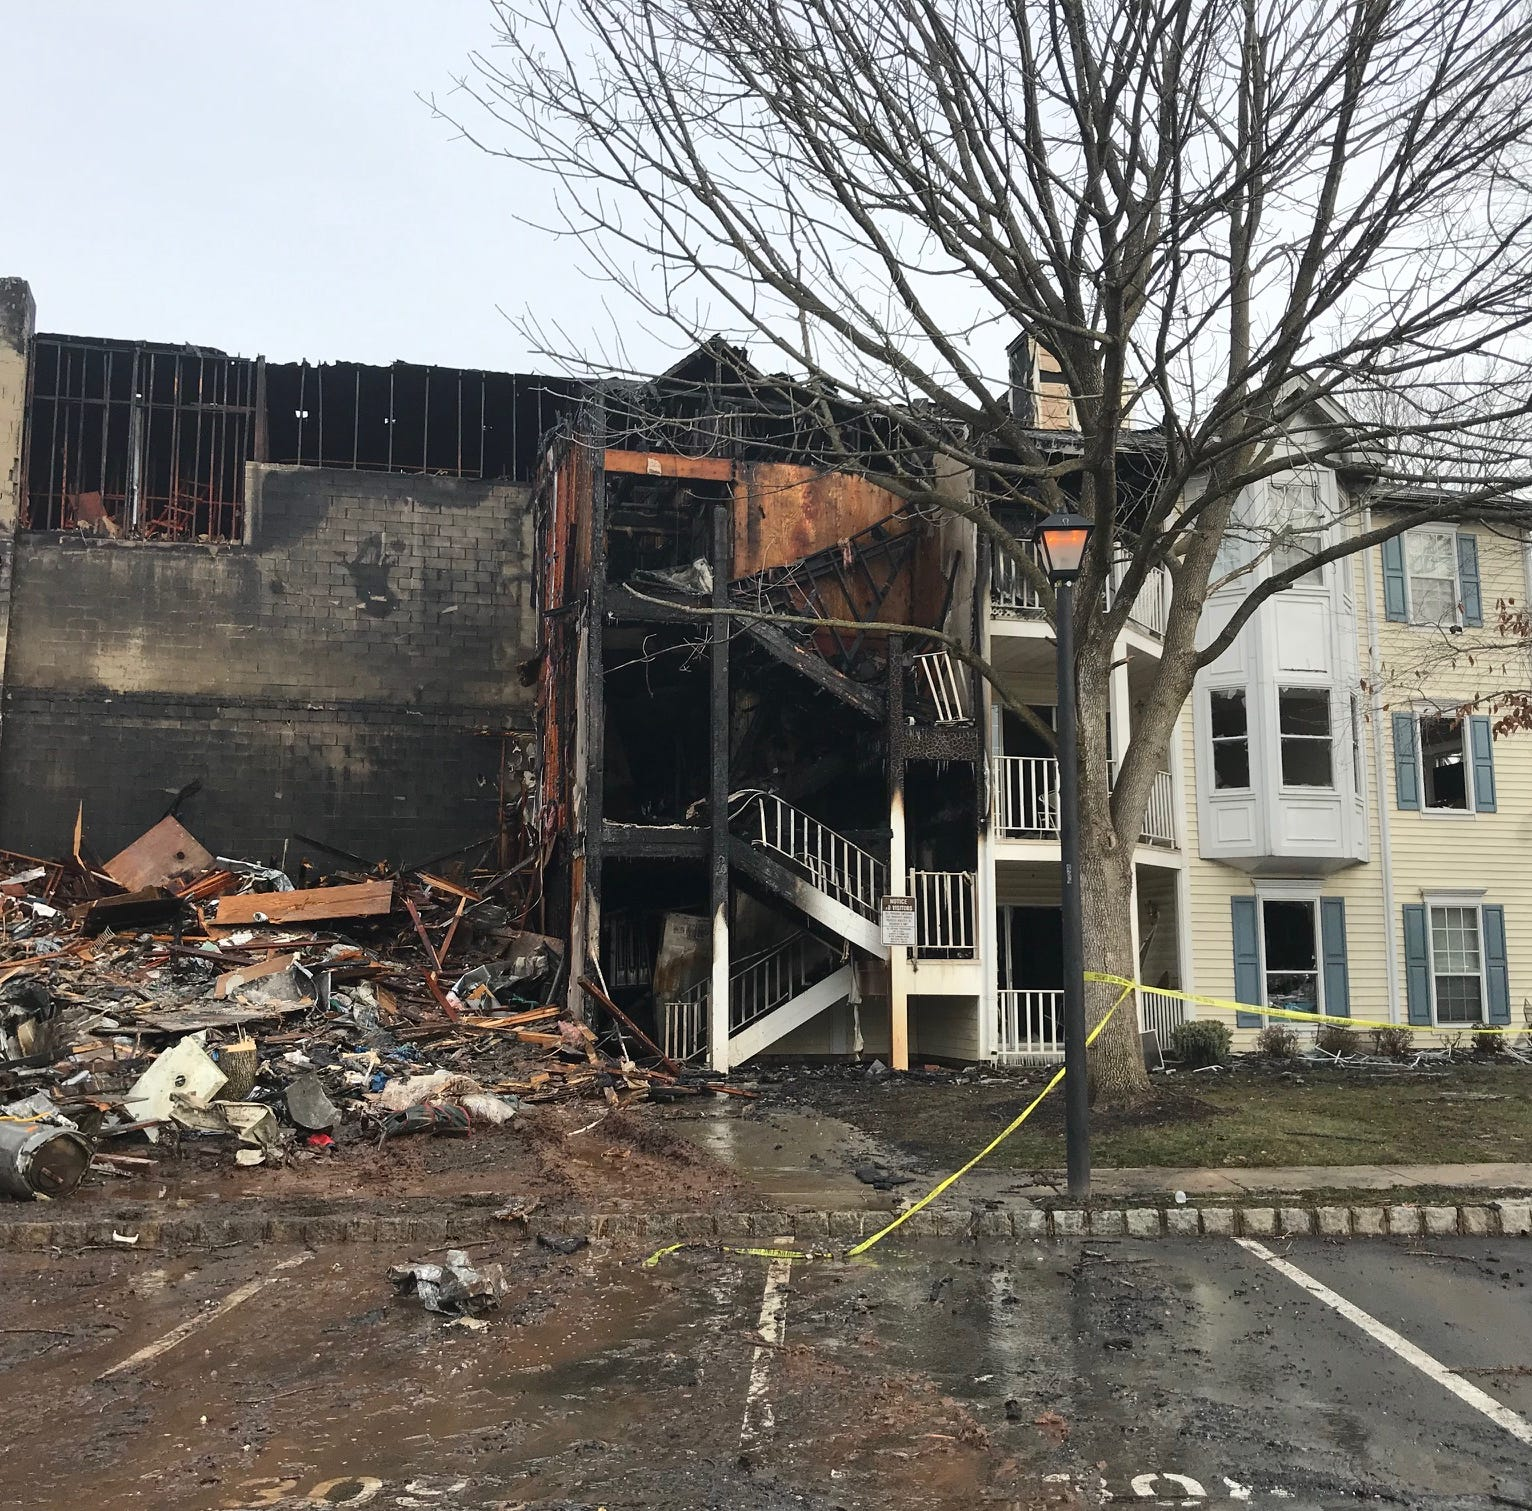 North Brunswick fire: Holiday decorations caused blaze that displaced 28